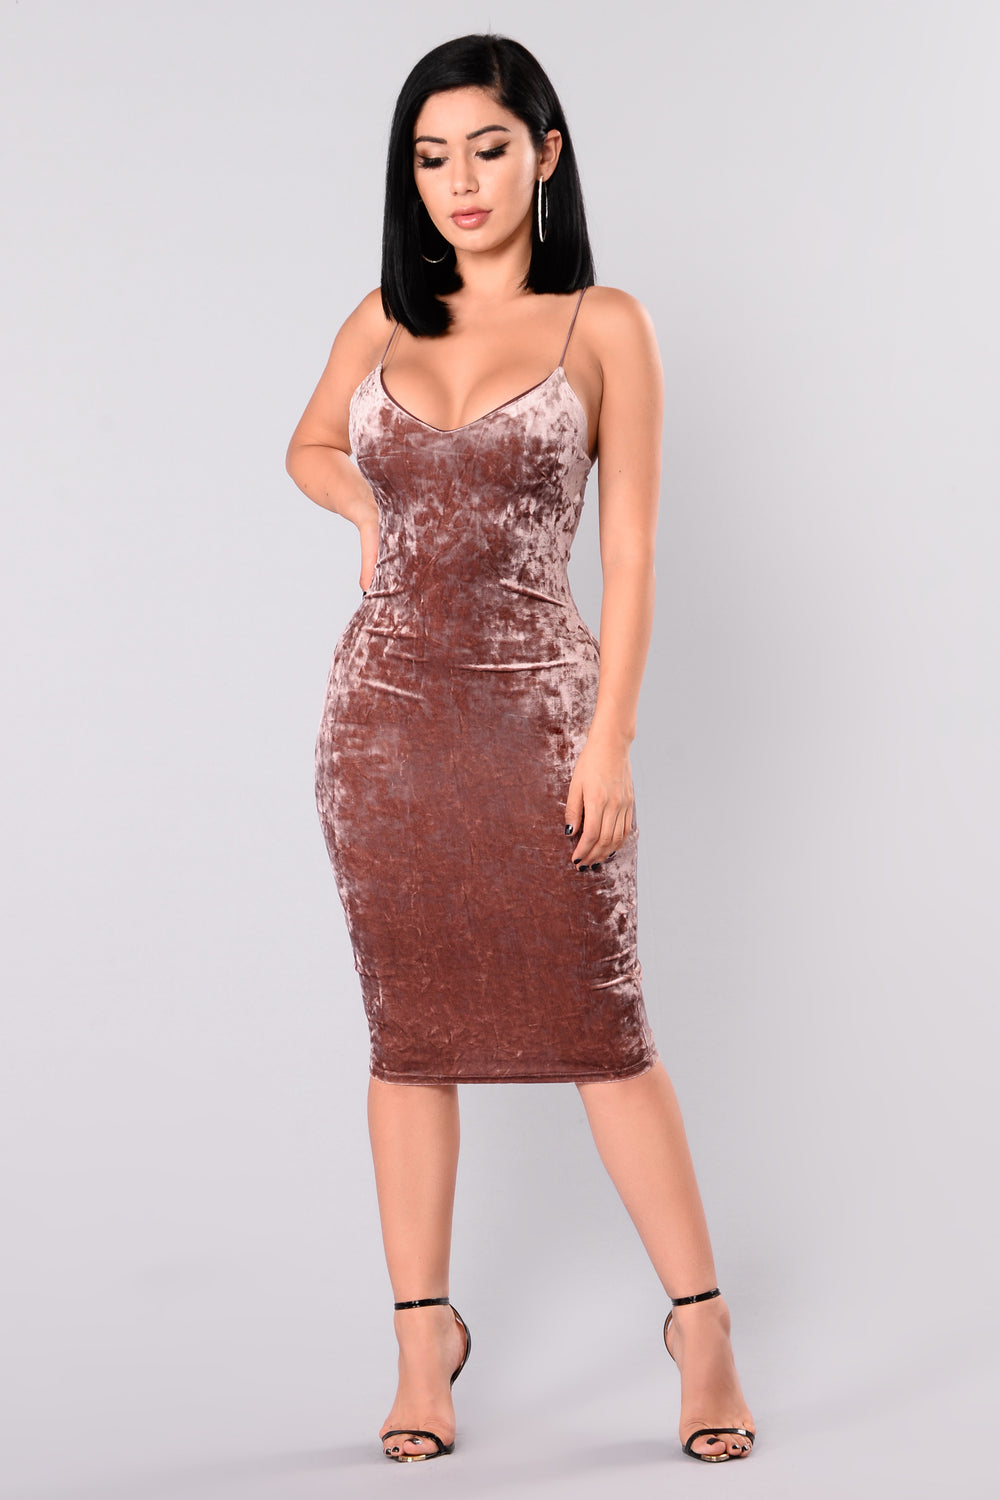 Denny Velvet Dress - Marsala